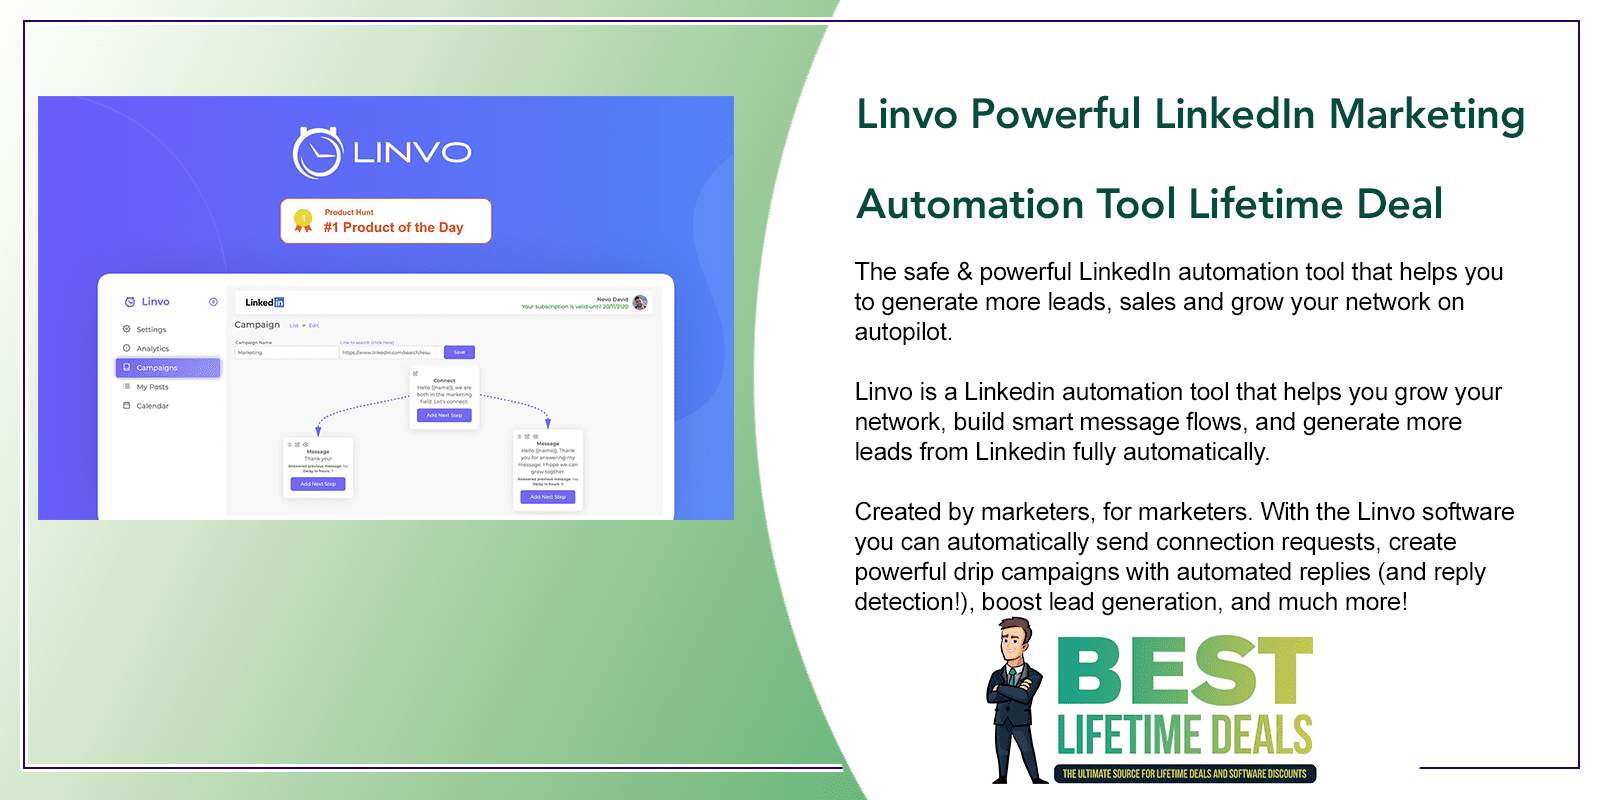 Linvo Powerful LinkedIn Marketing Automation Tool Featured Image